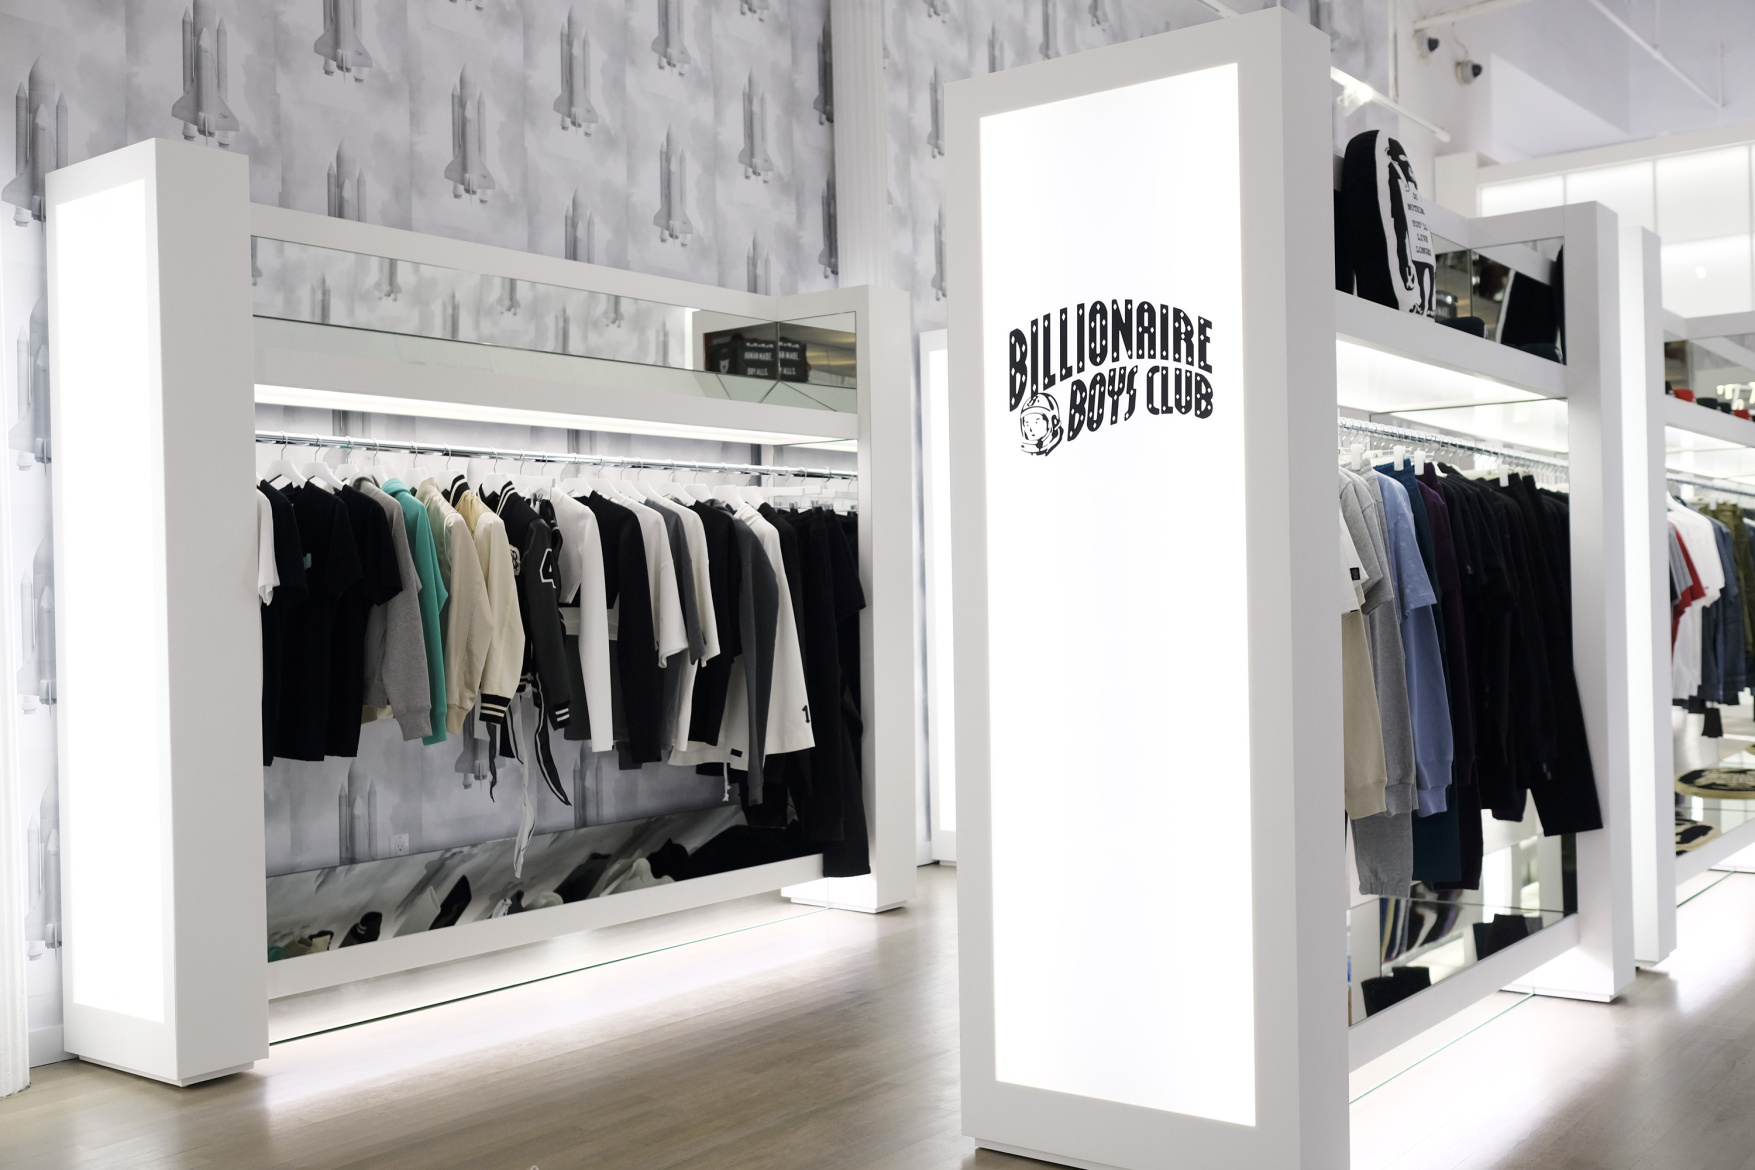 pharrell-nigo-billionaire-boys-club-ice-cream-new-york-flagship-store-9